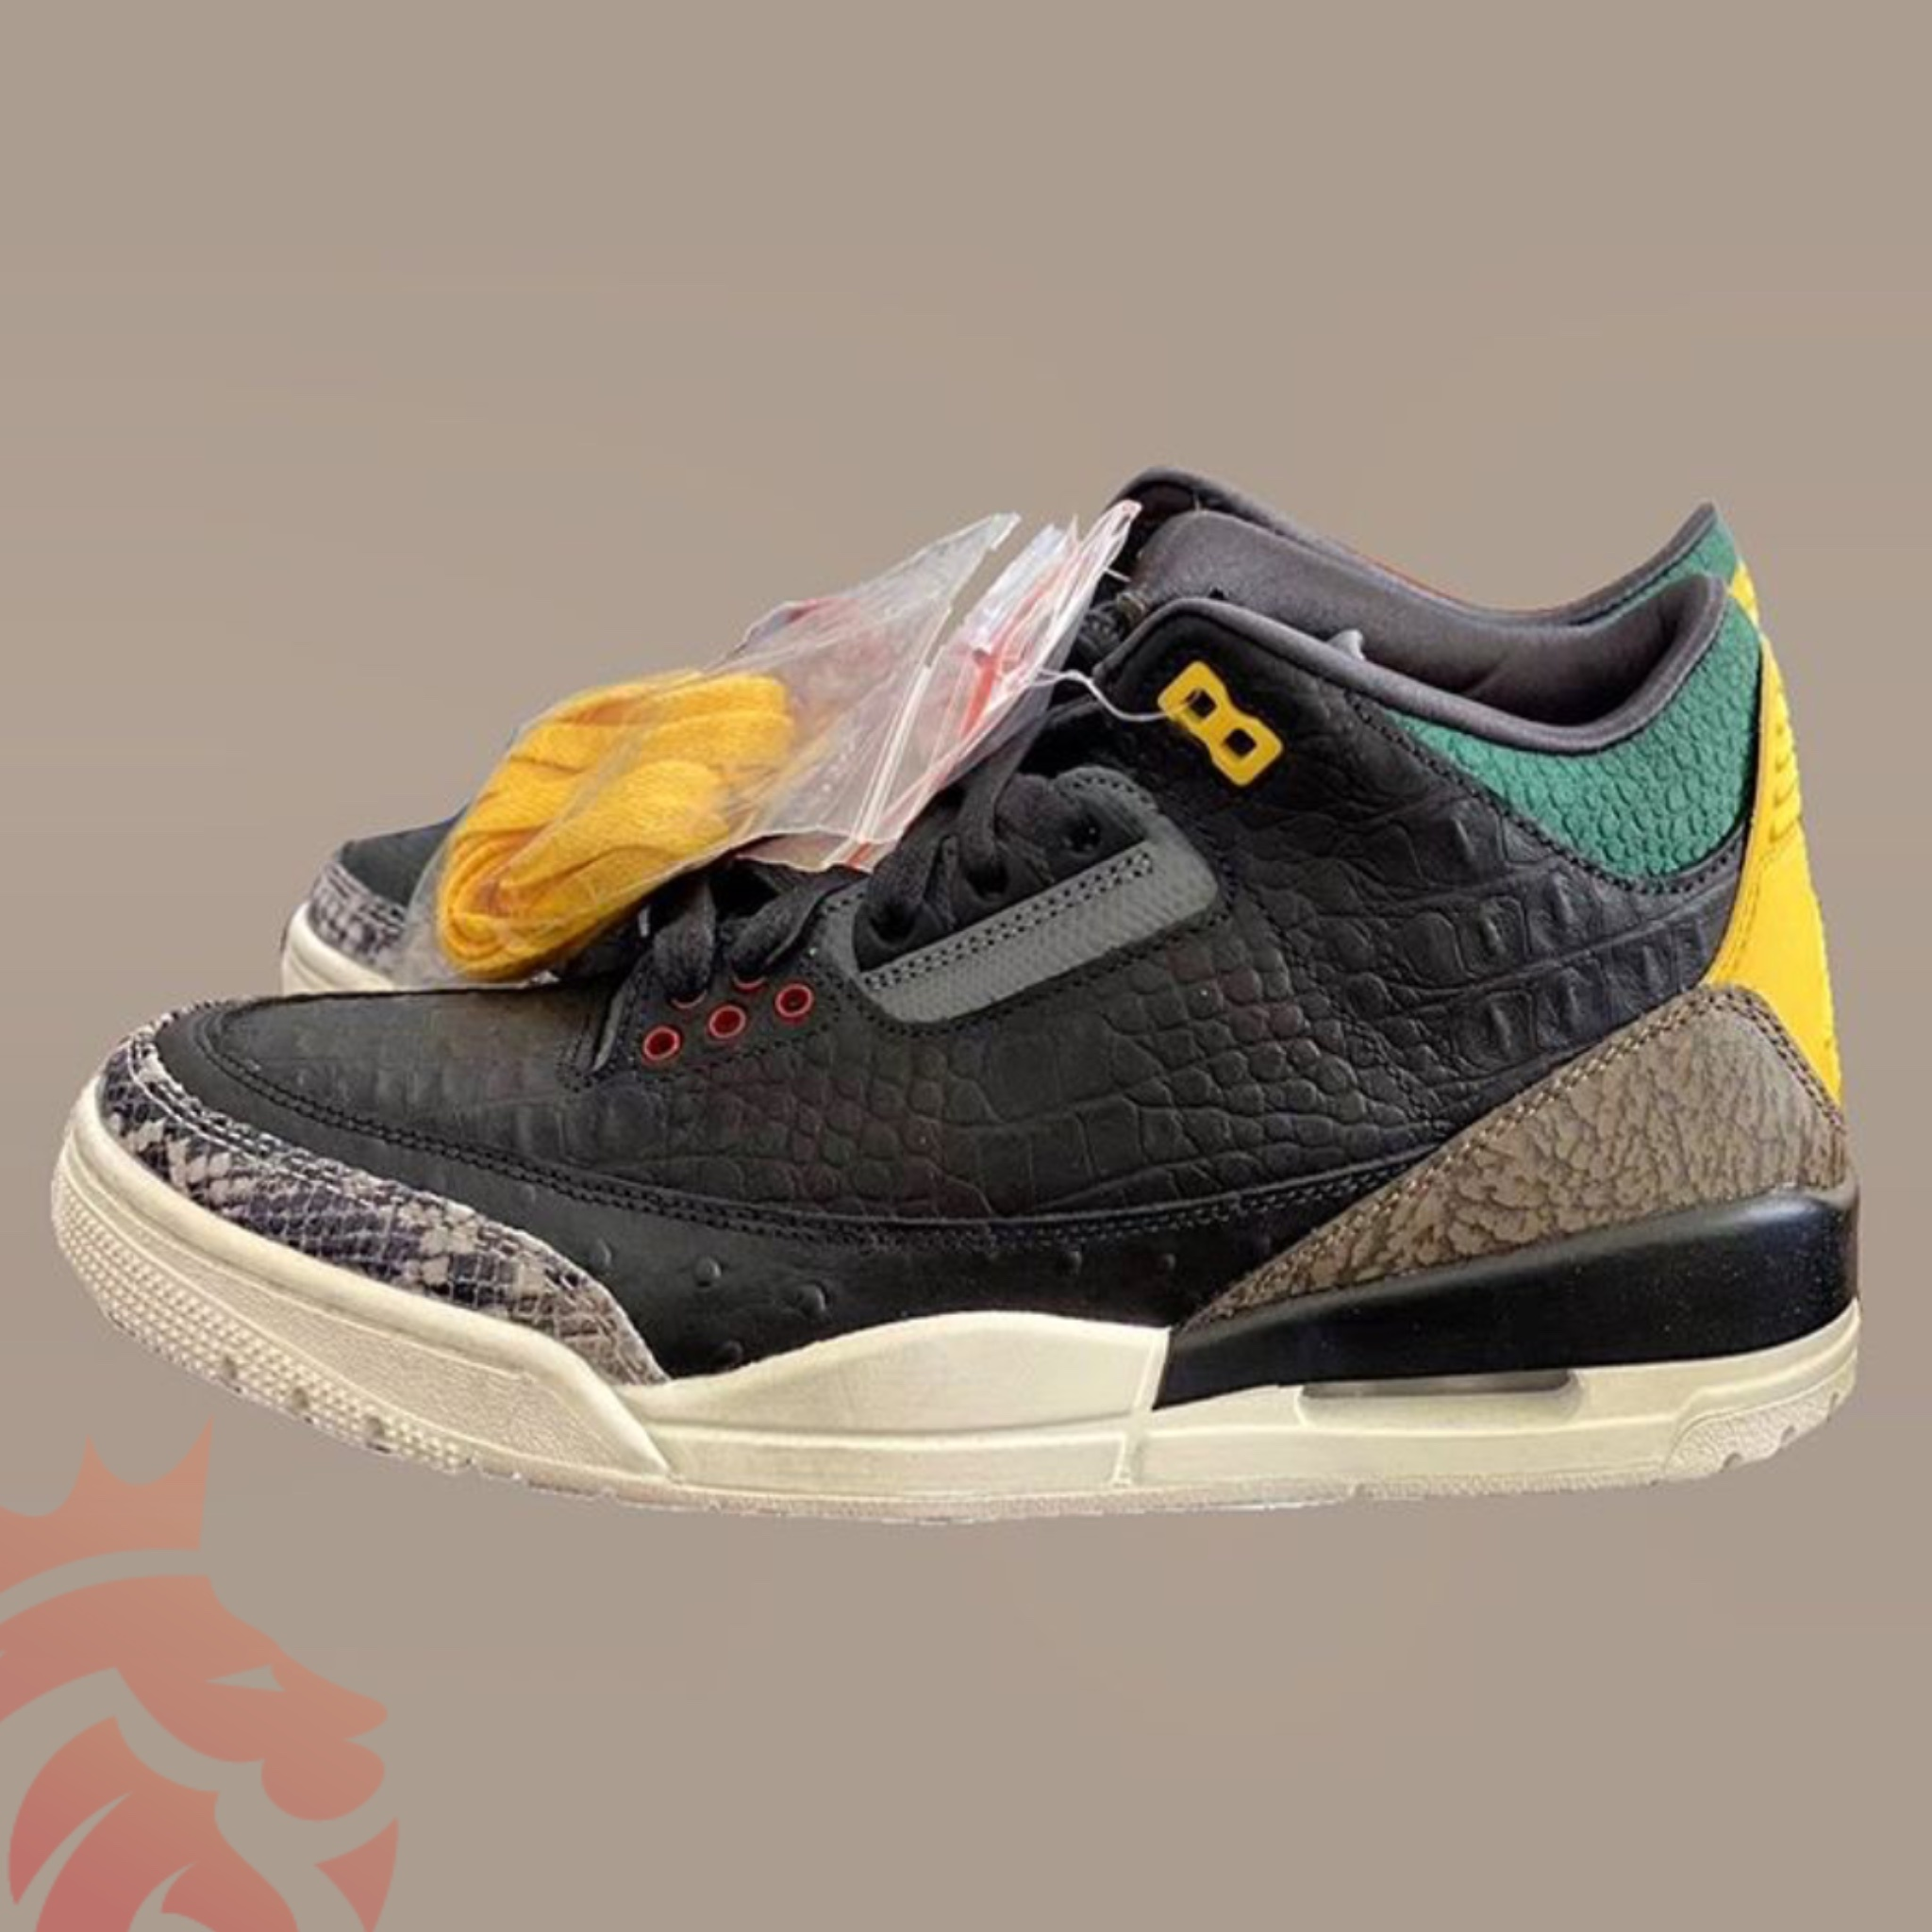 Air Jordan 3 Animal Instinct